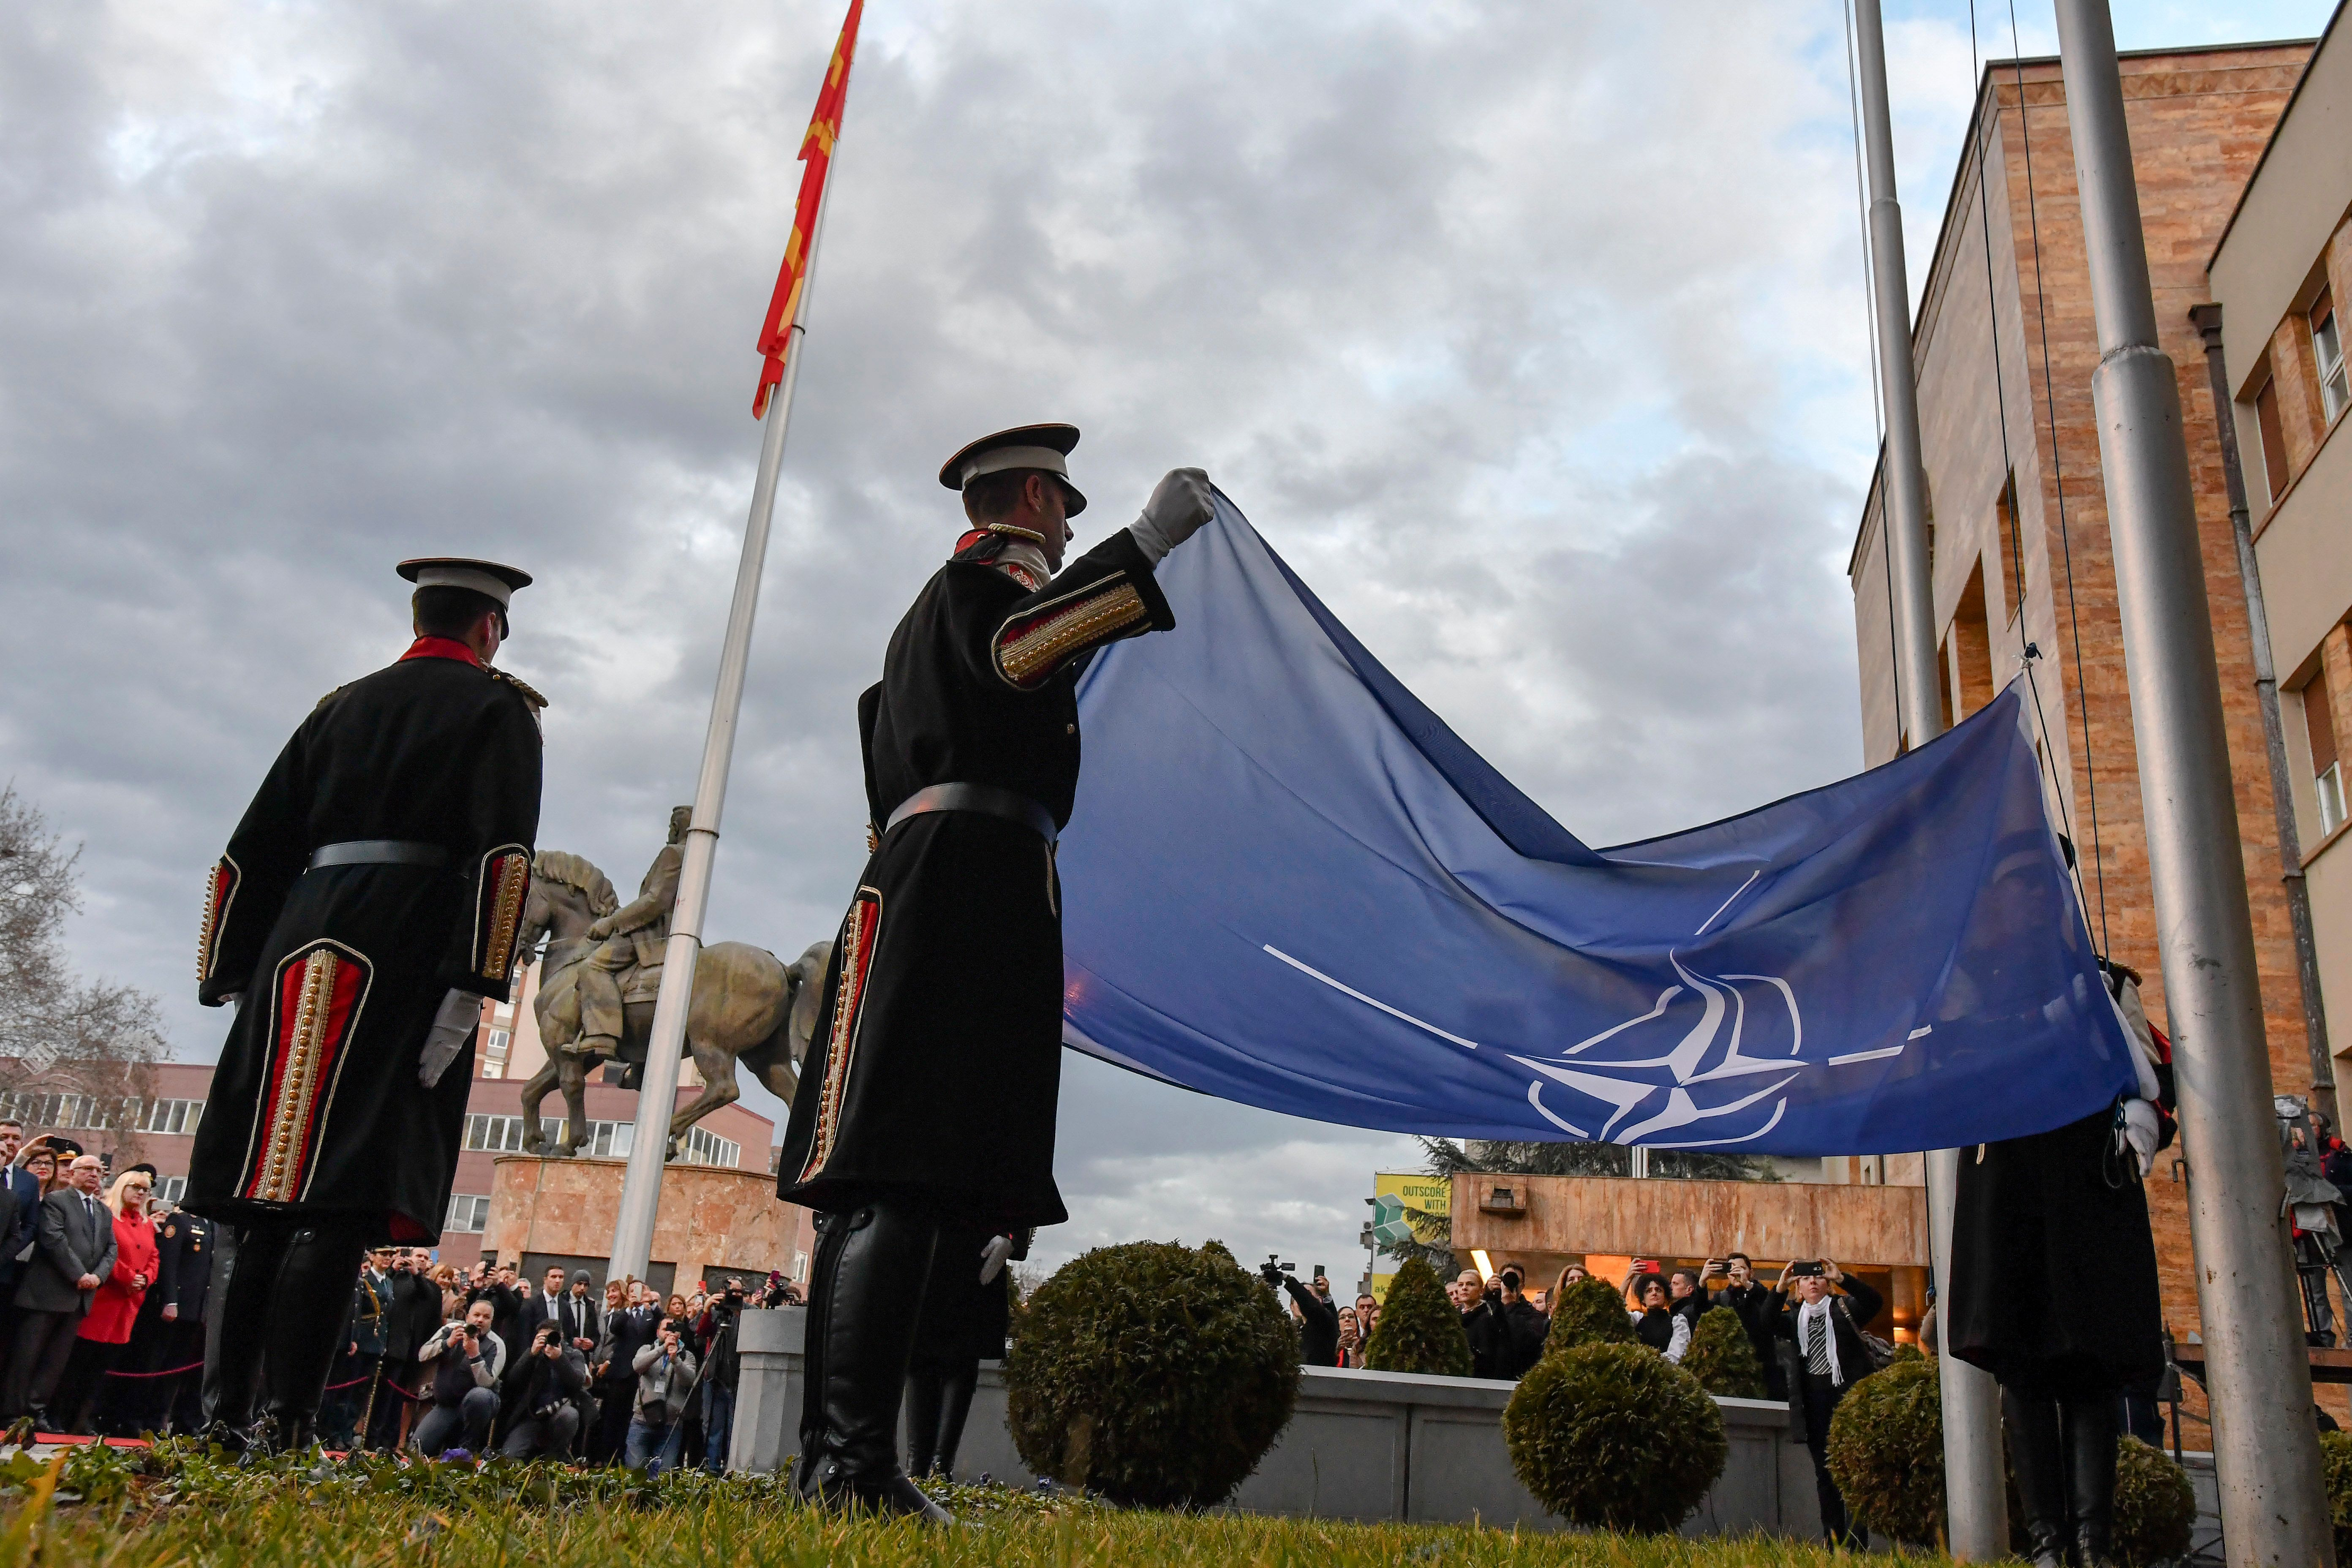 Members of the guard of honor raise the NATO flag during a flag ceremony in front of the parliament building in Skopje, North Macedonia, on Feb. 11, 2020, after the lawmakers ratified the NATO accession agreement. (Photo by Robert Atanasovski/AFP via Getty Images)